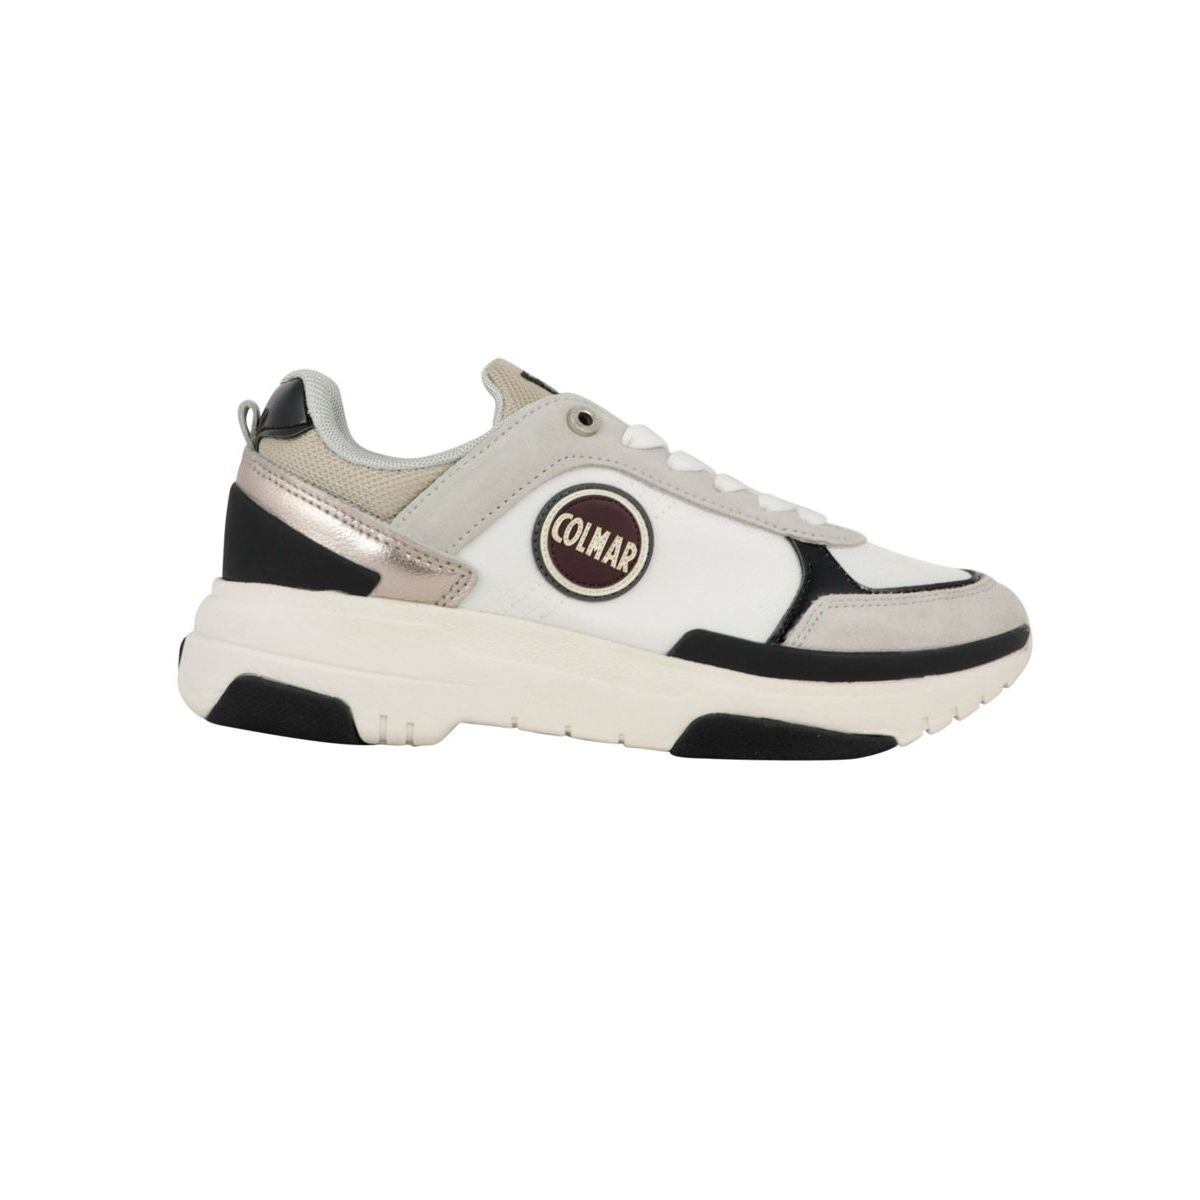 Travis S-1 bi-material sneakers with metal details White / gray Colmar Shoes